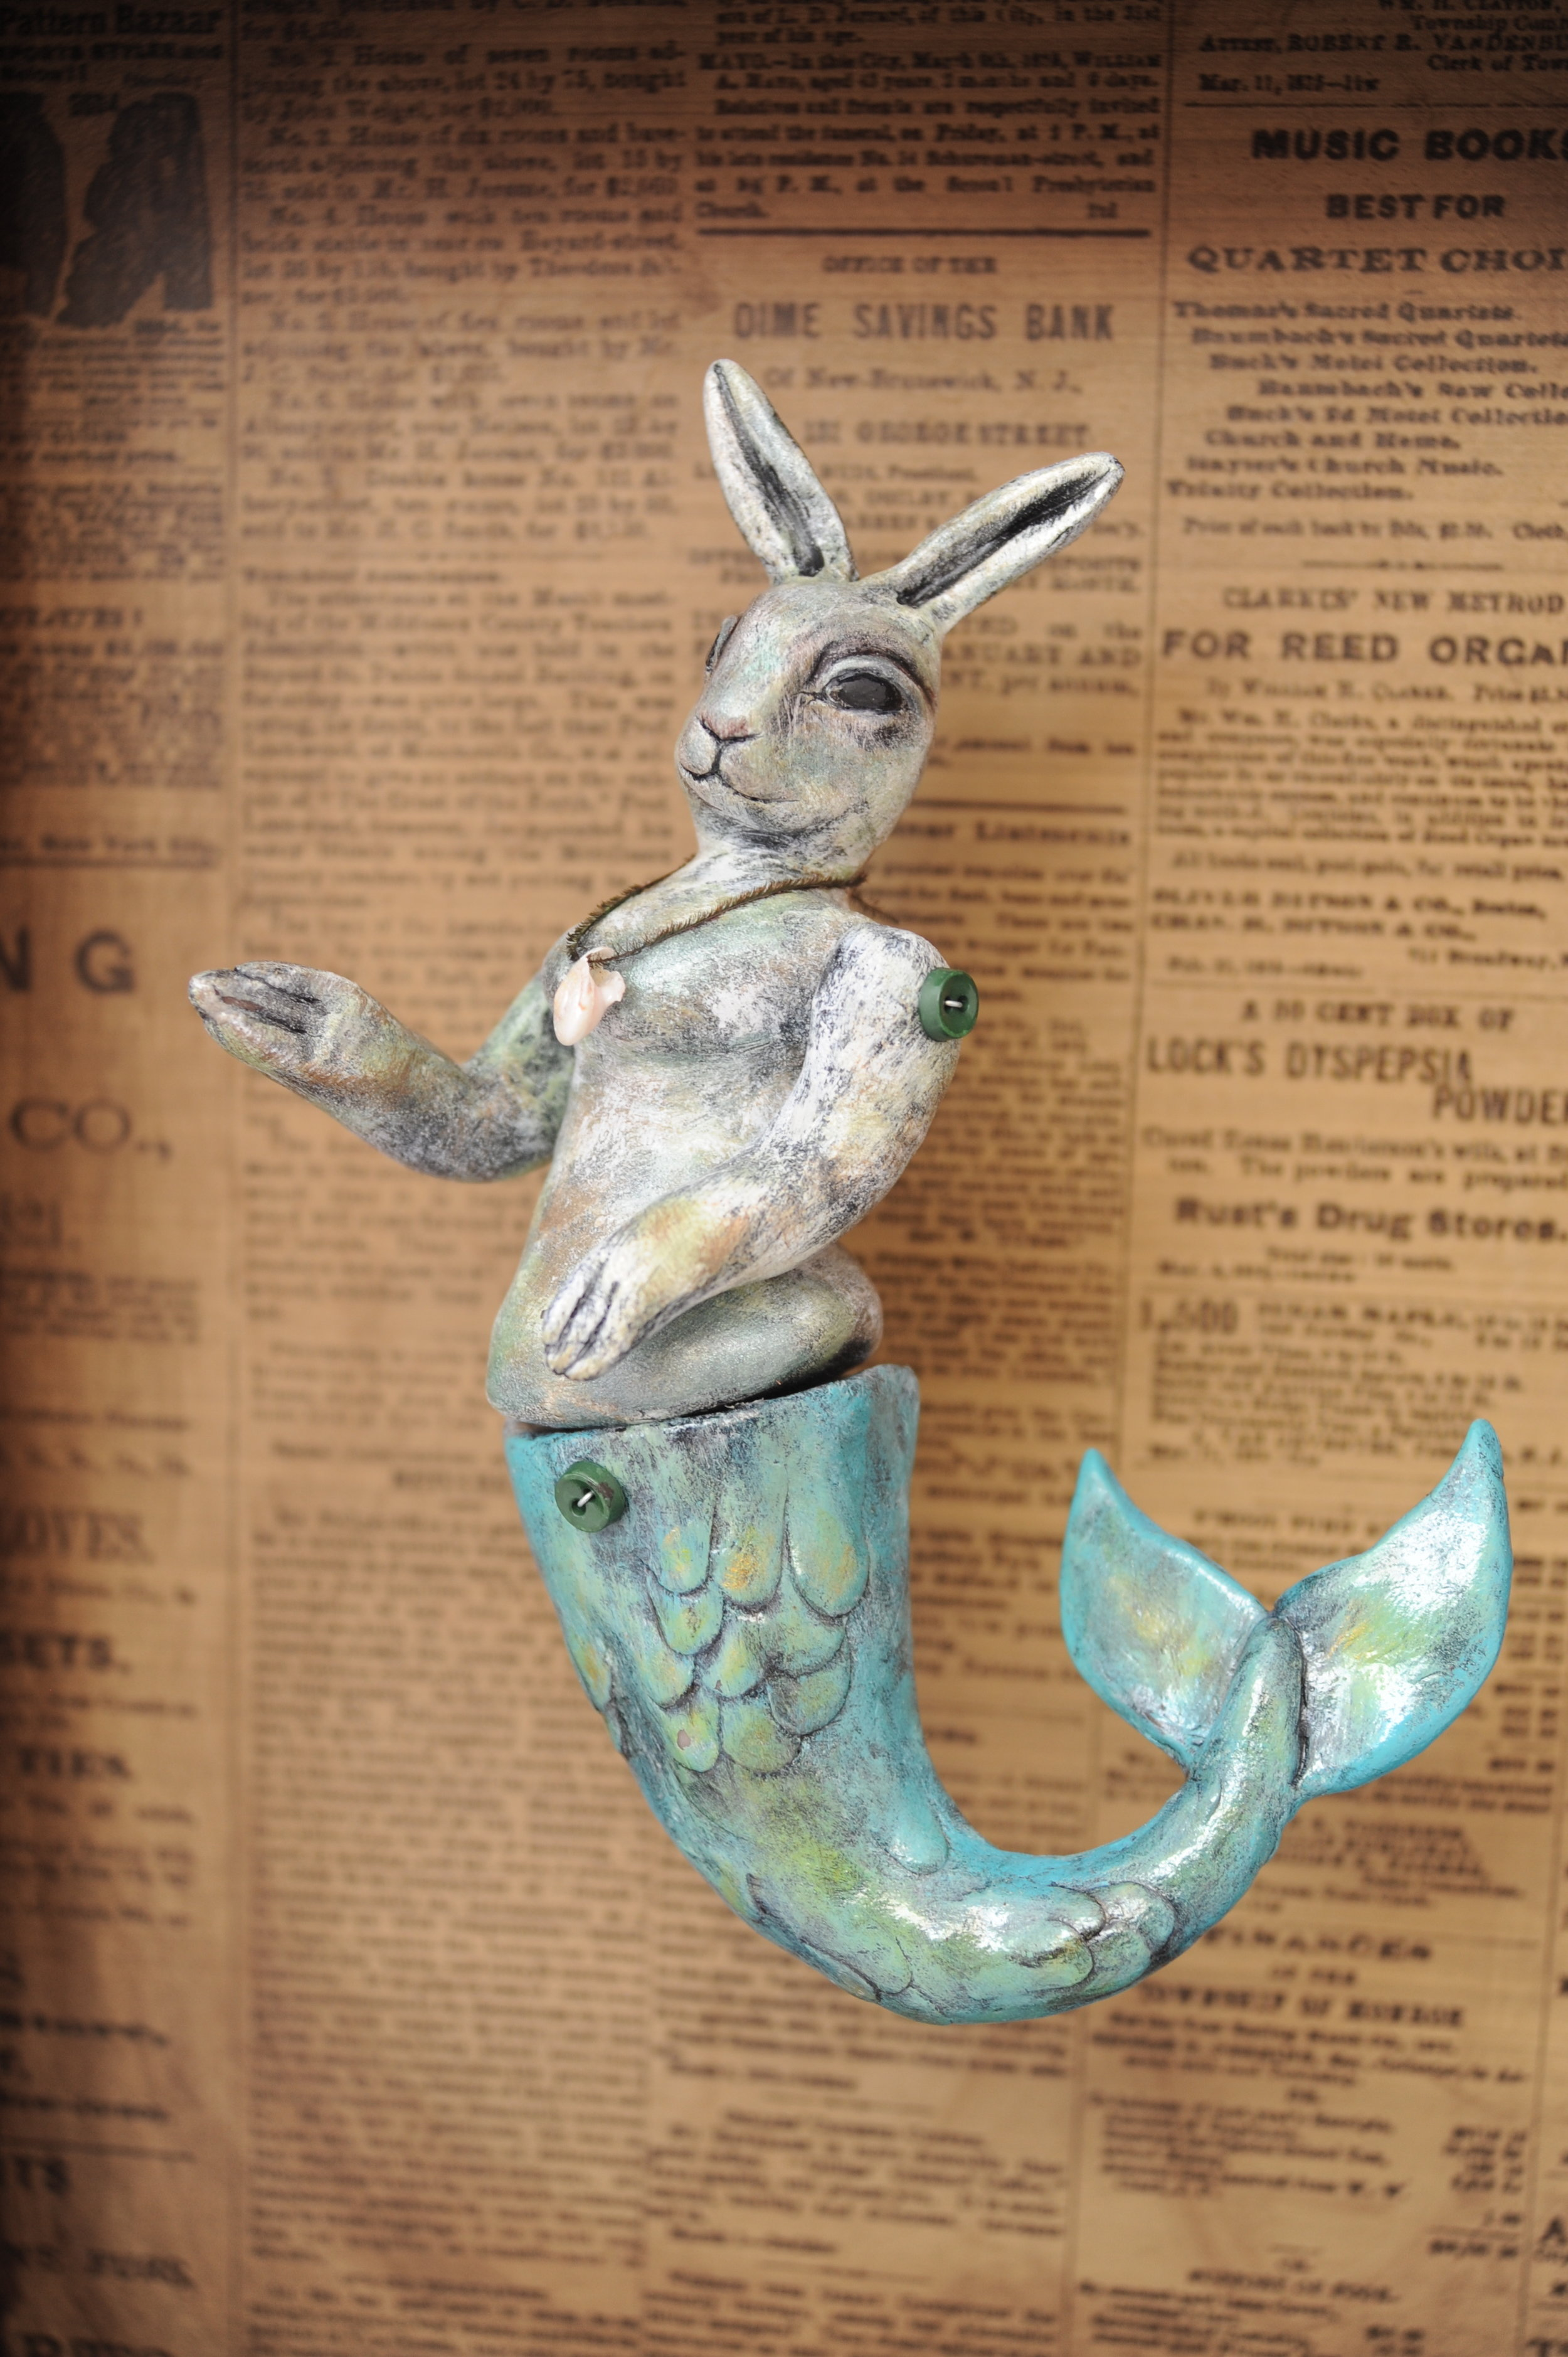 MERBUNNY   Created as part of my Circus Curiosities series. Her arms and tail move. Sculpted from clay and set in a salvaged drawer. Lit with an electric light.  Photo by  Rebecca Duerr